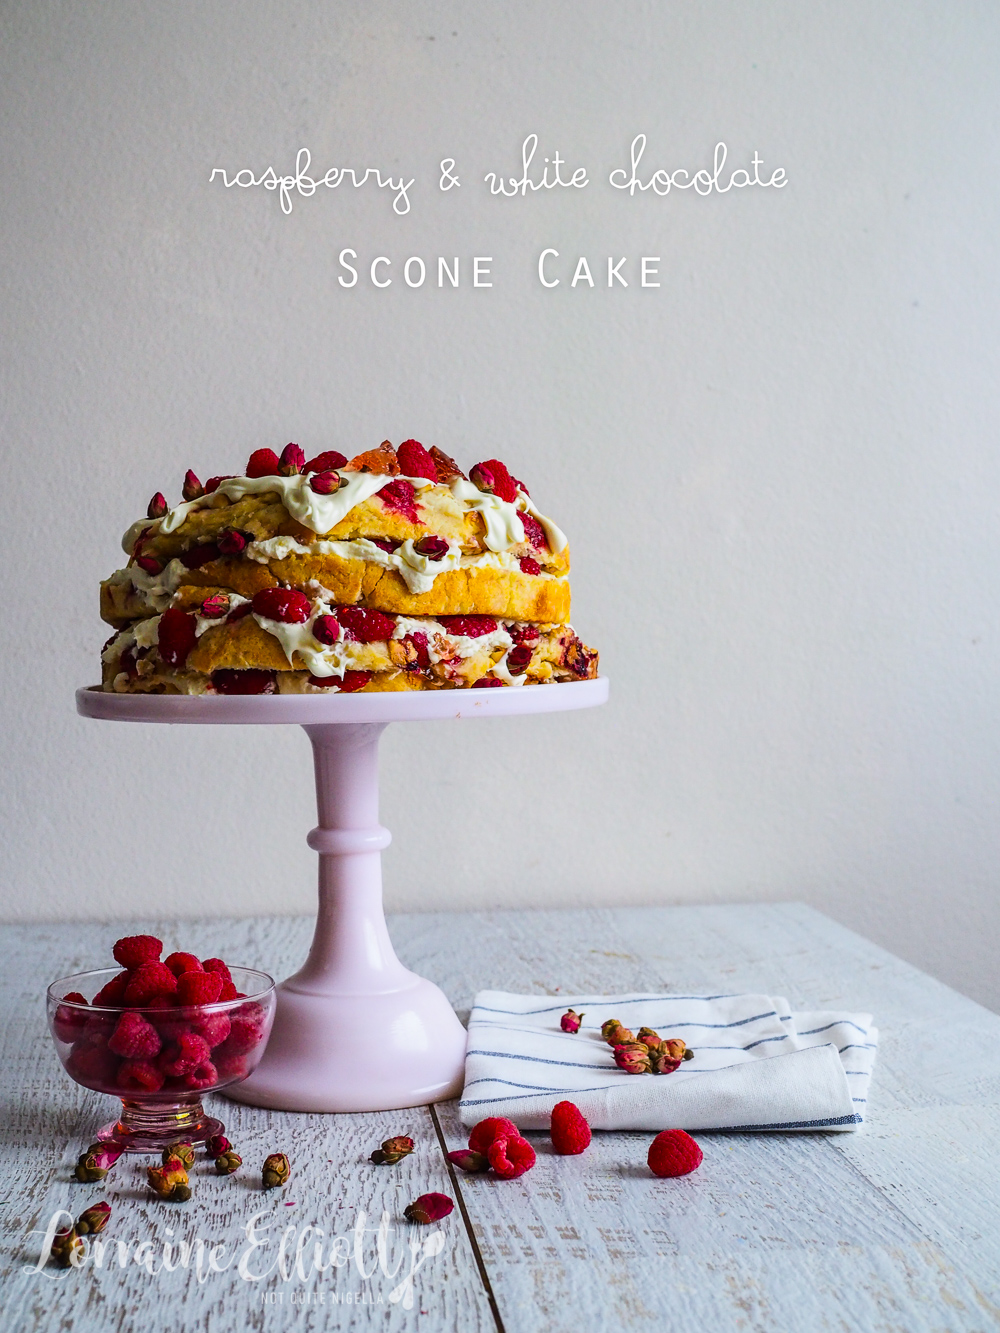 Raspberry & White Chocolate Scone Cake